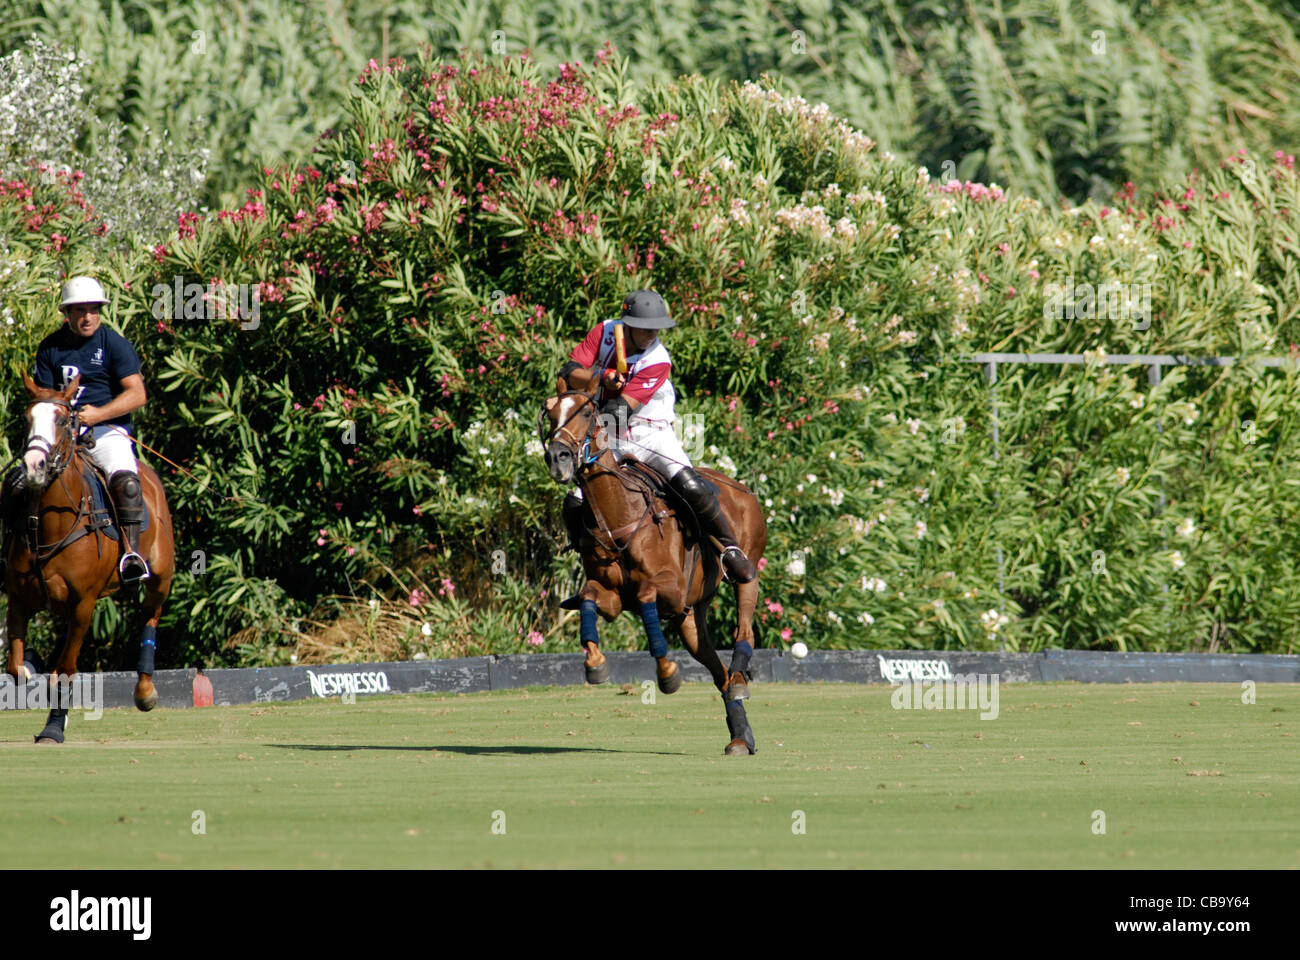 Polo player at full gallop during match - Stock Image